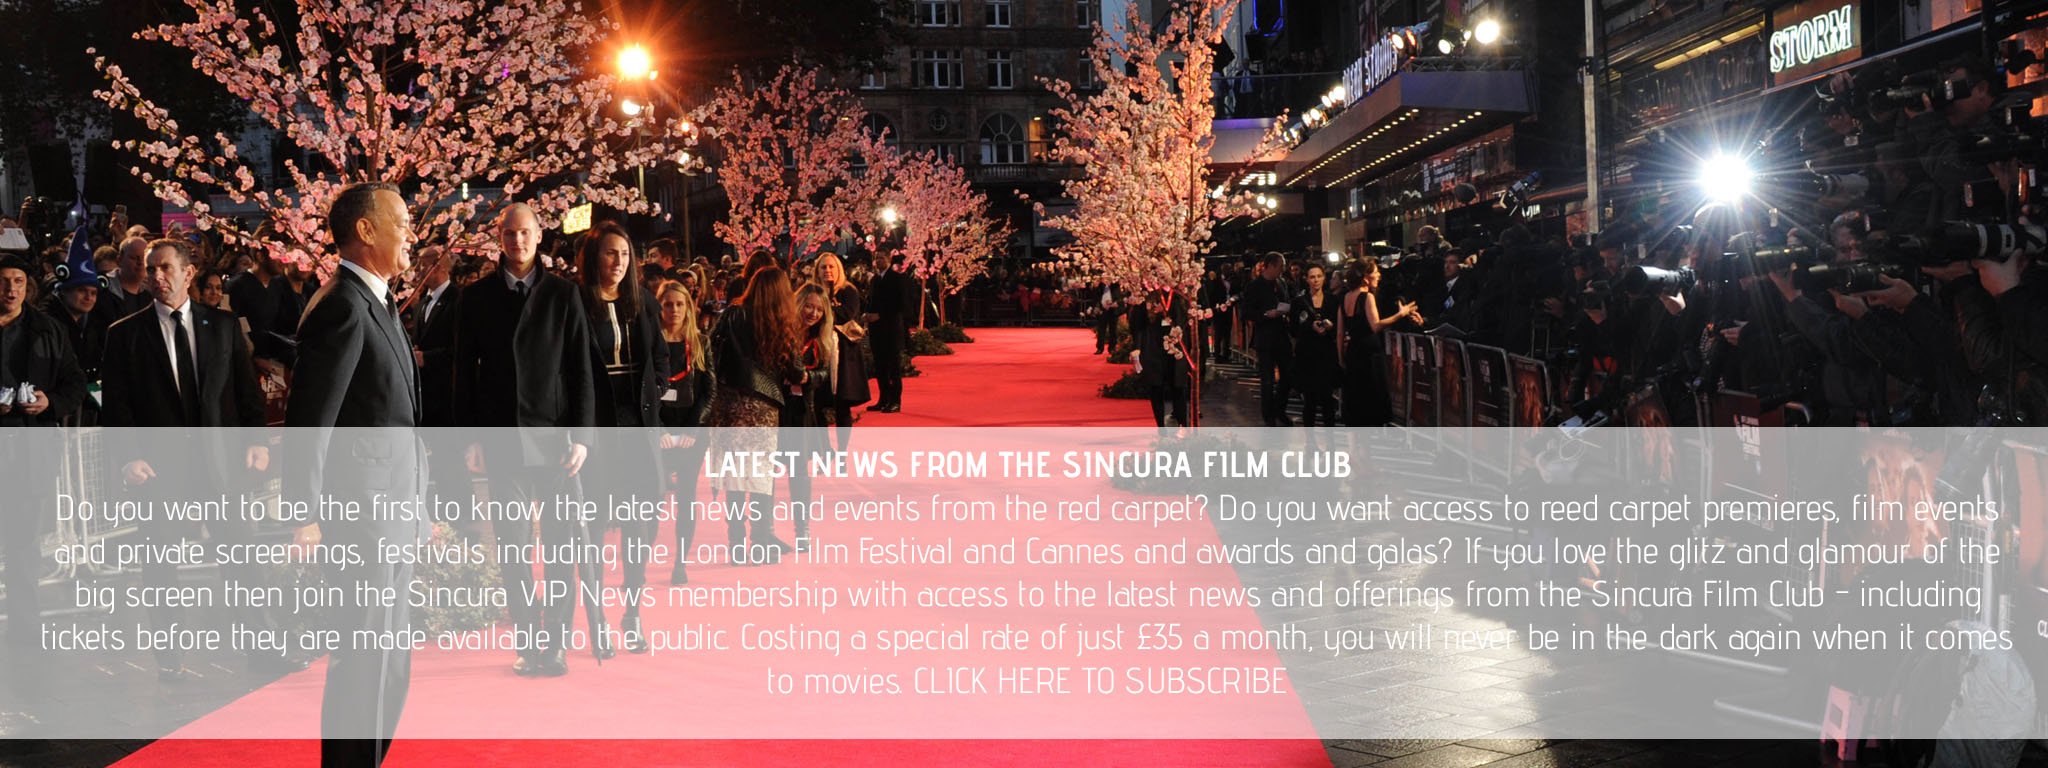 The Sincura Film Club